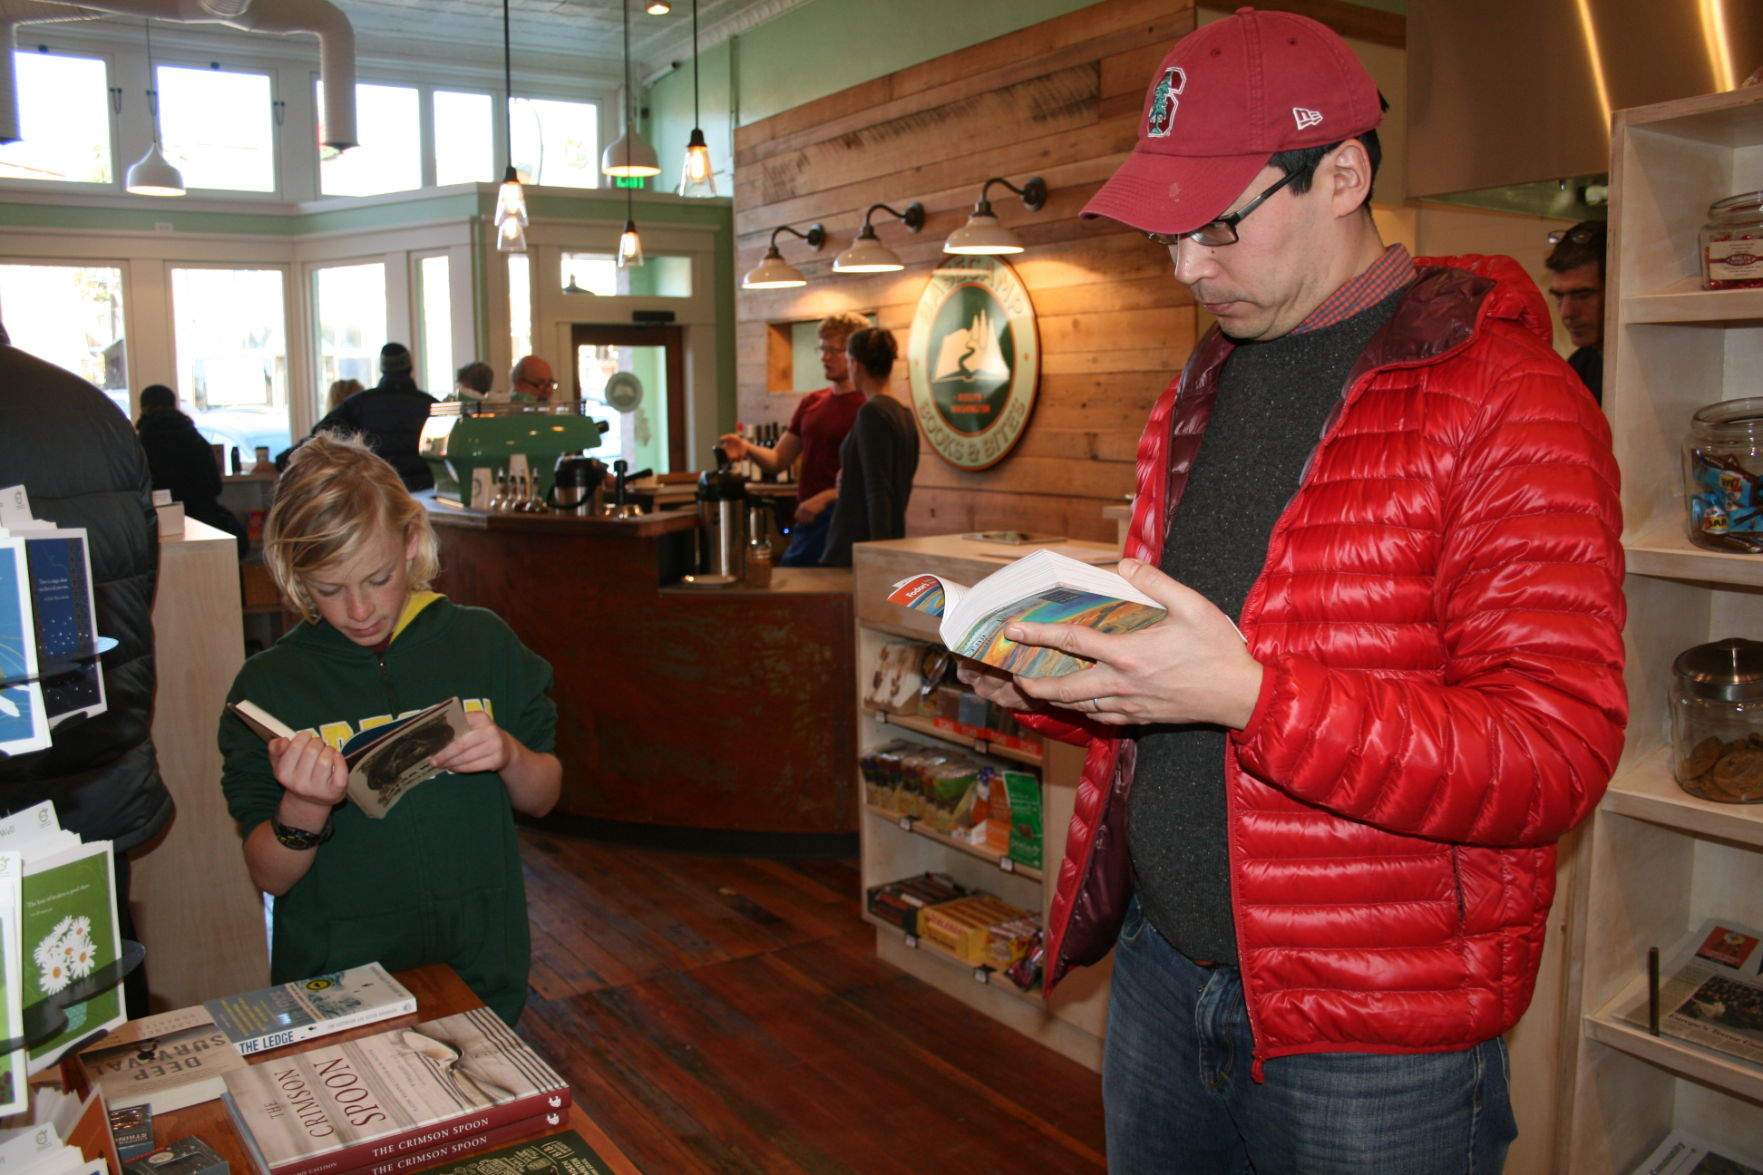 New Bookstore And Cafe Opens Up In Roslyn To Rave Reviews | Upper County |  Dailyrecordnews.com